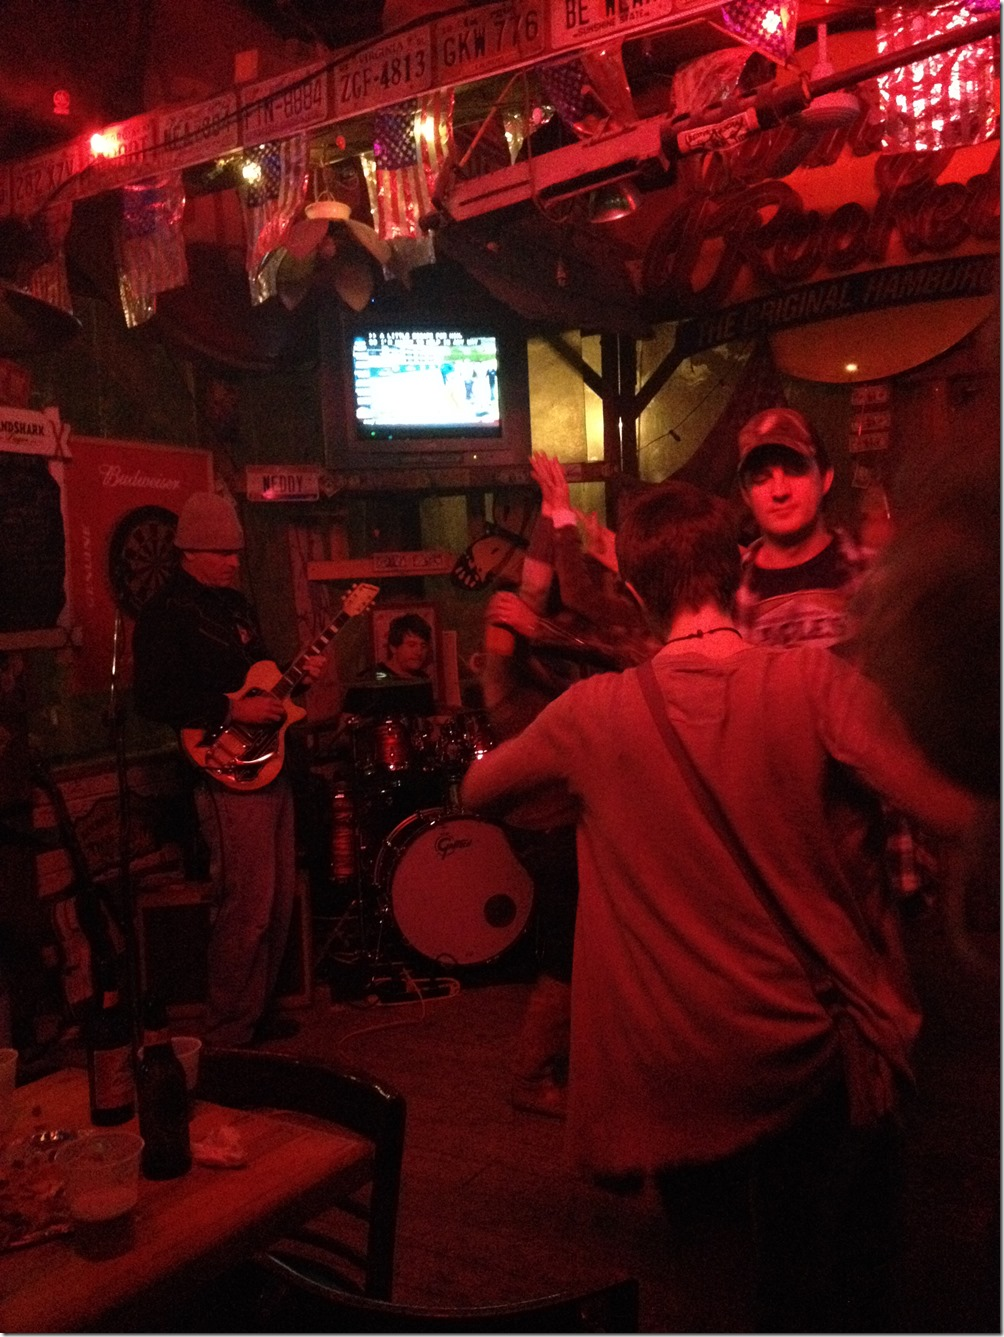 The nightlife in Tybee Island, Georgia is casual and fun. Grab a drink with the locals at a bar near your hotel and enjoy some live music and good stories.